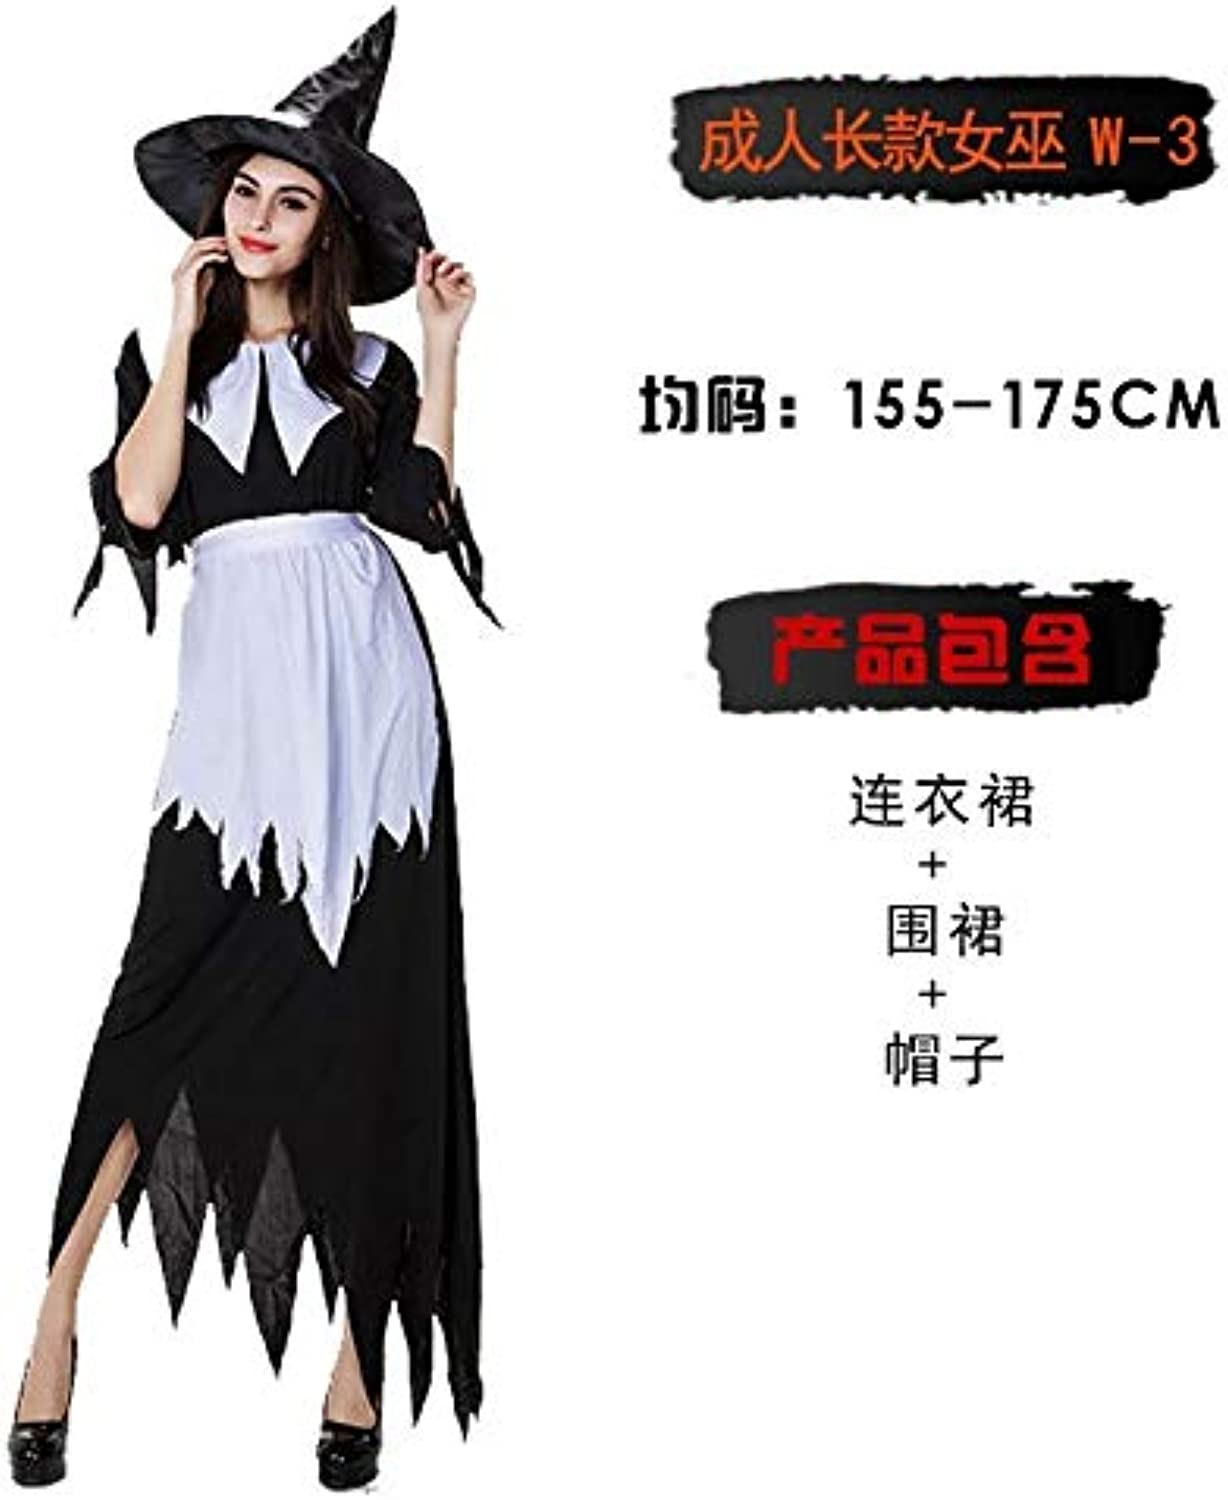 Xiaoludian Halloween Costume Adult Witch Cosplay Show Bat Little